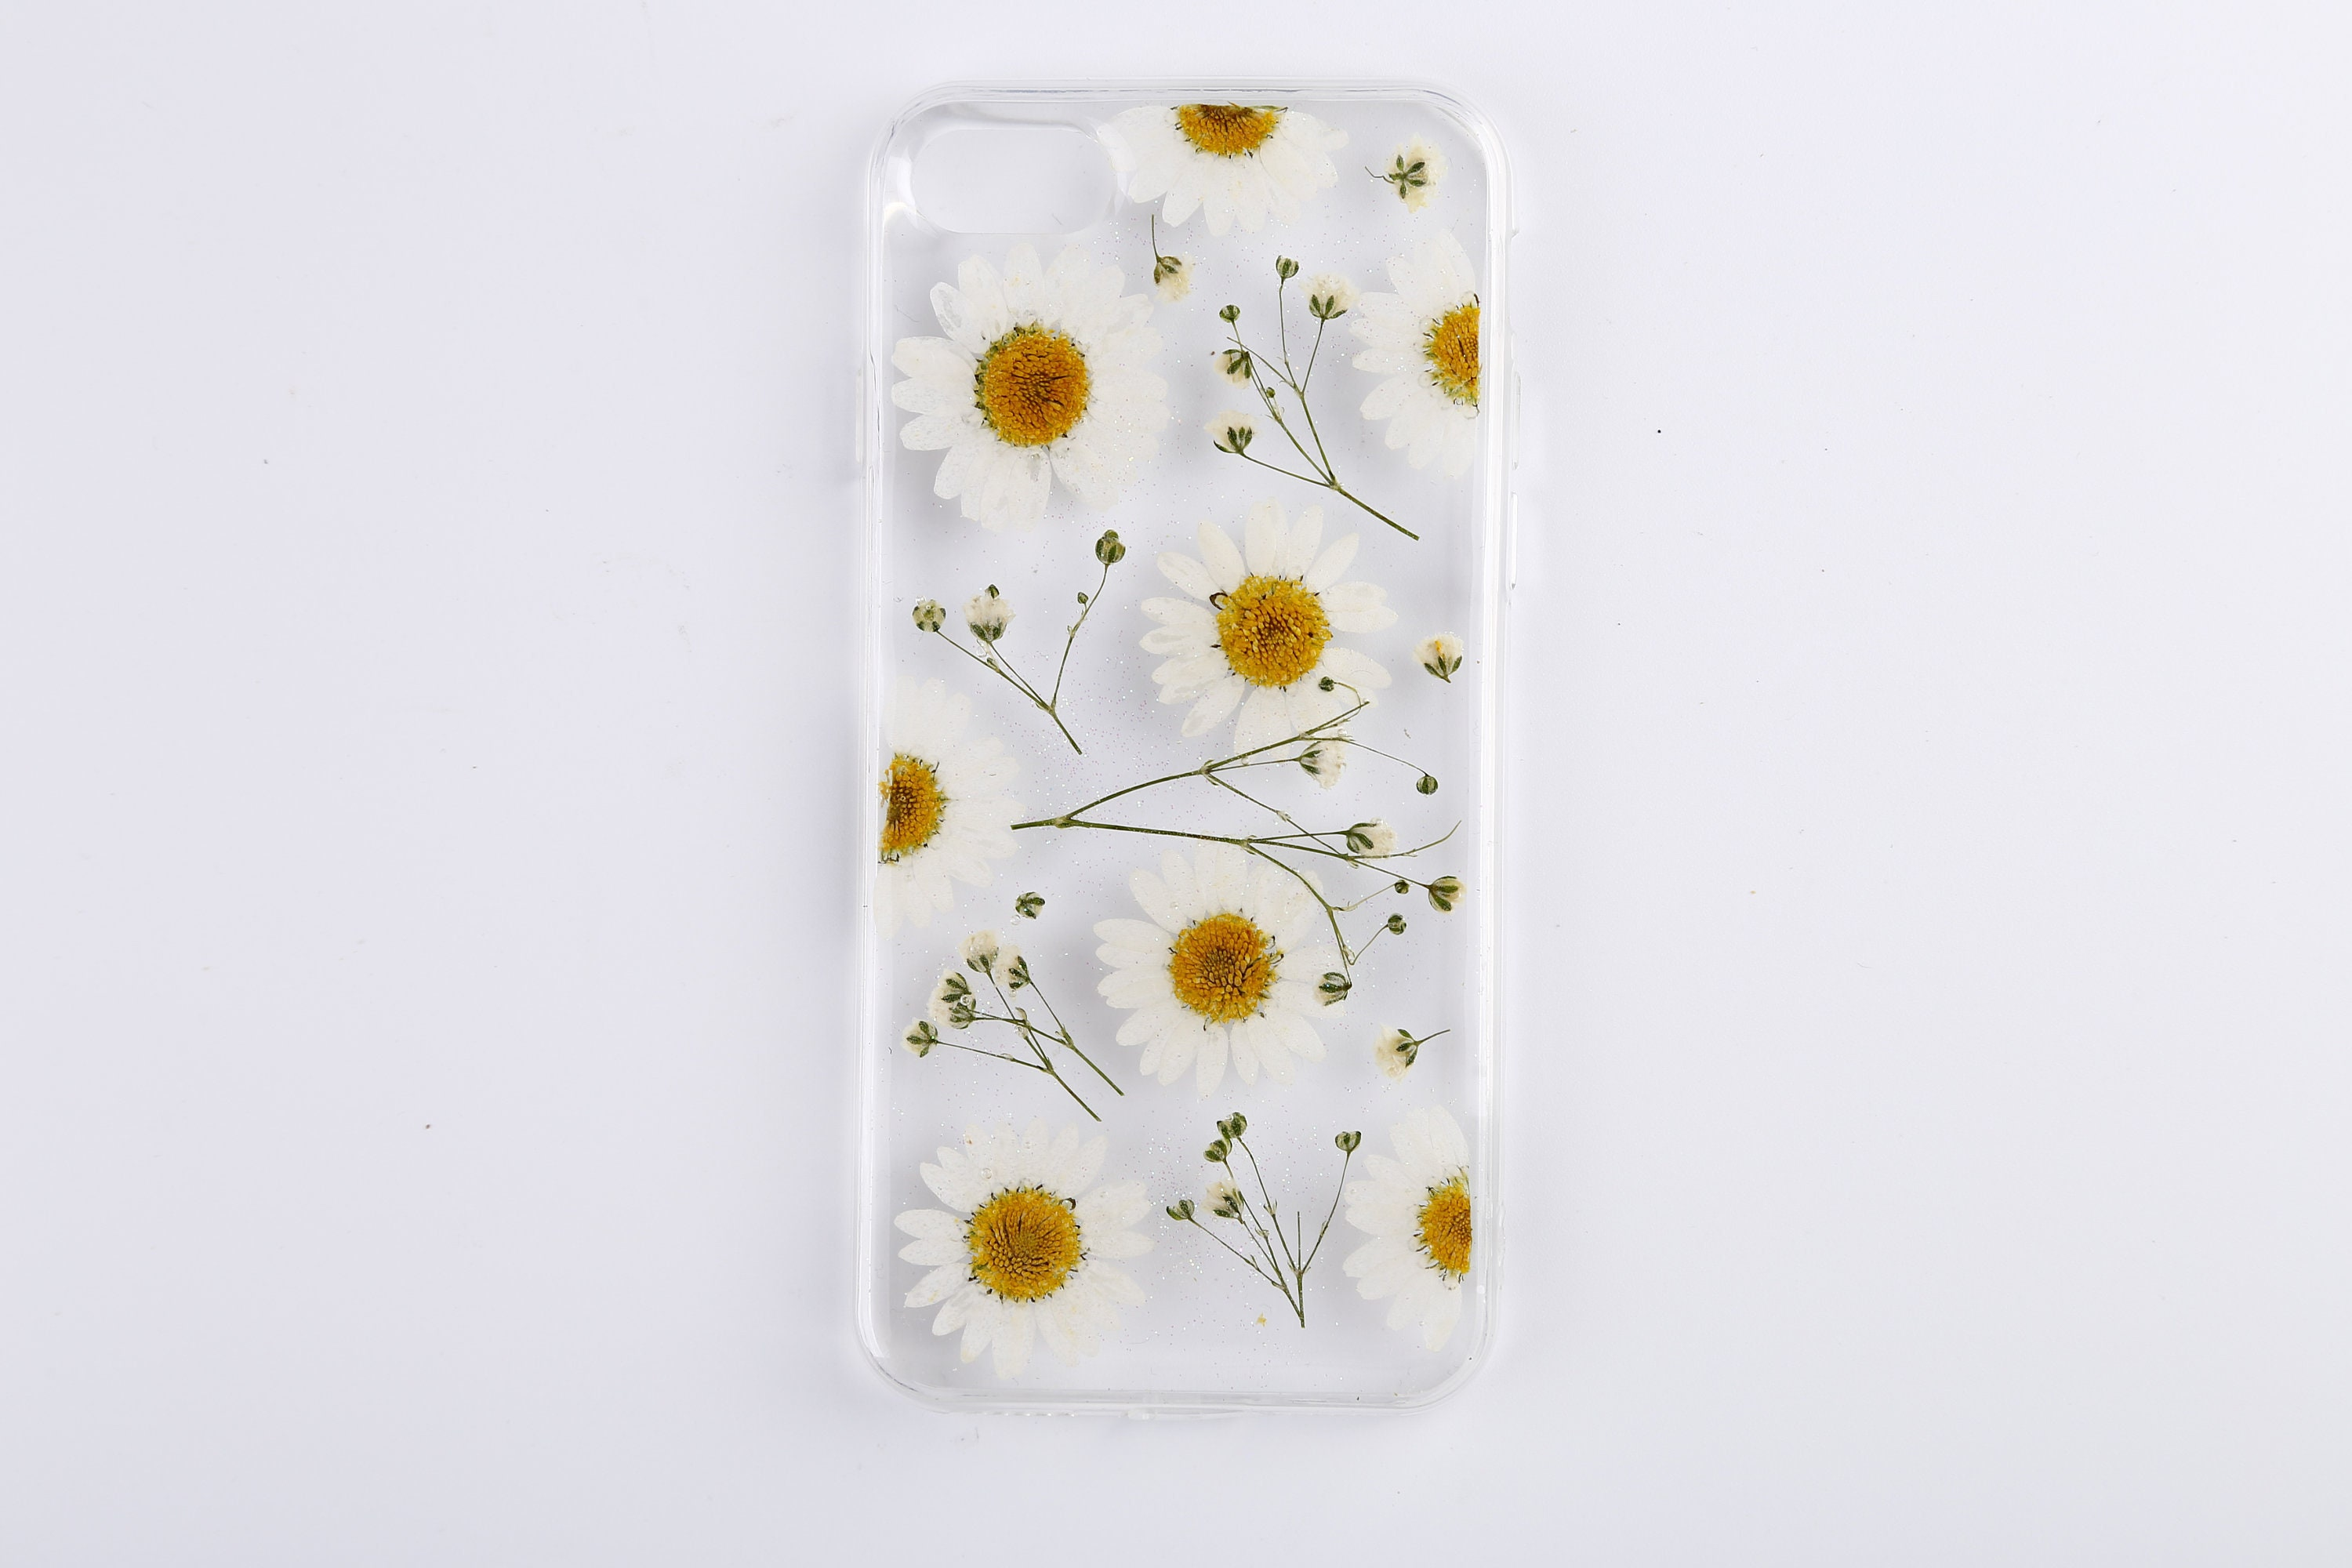 info for a813f 32d42 Handmade real pressed dried flower case, iphone x 6 6s 7 8 plus se xr xs  max case, samsung galaxy s7 s8 s9 s10 plus s10e note 8 note 9 case